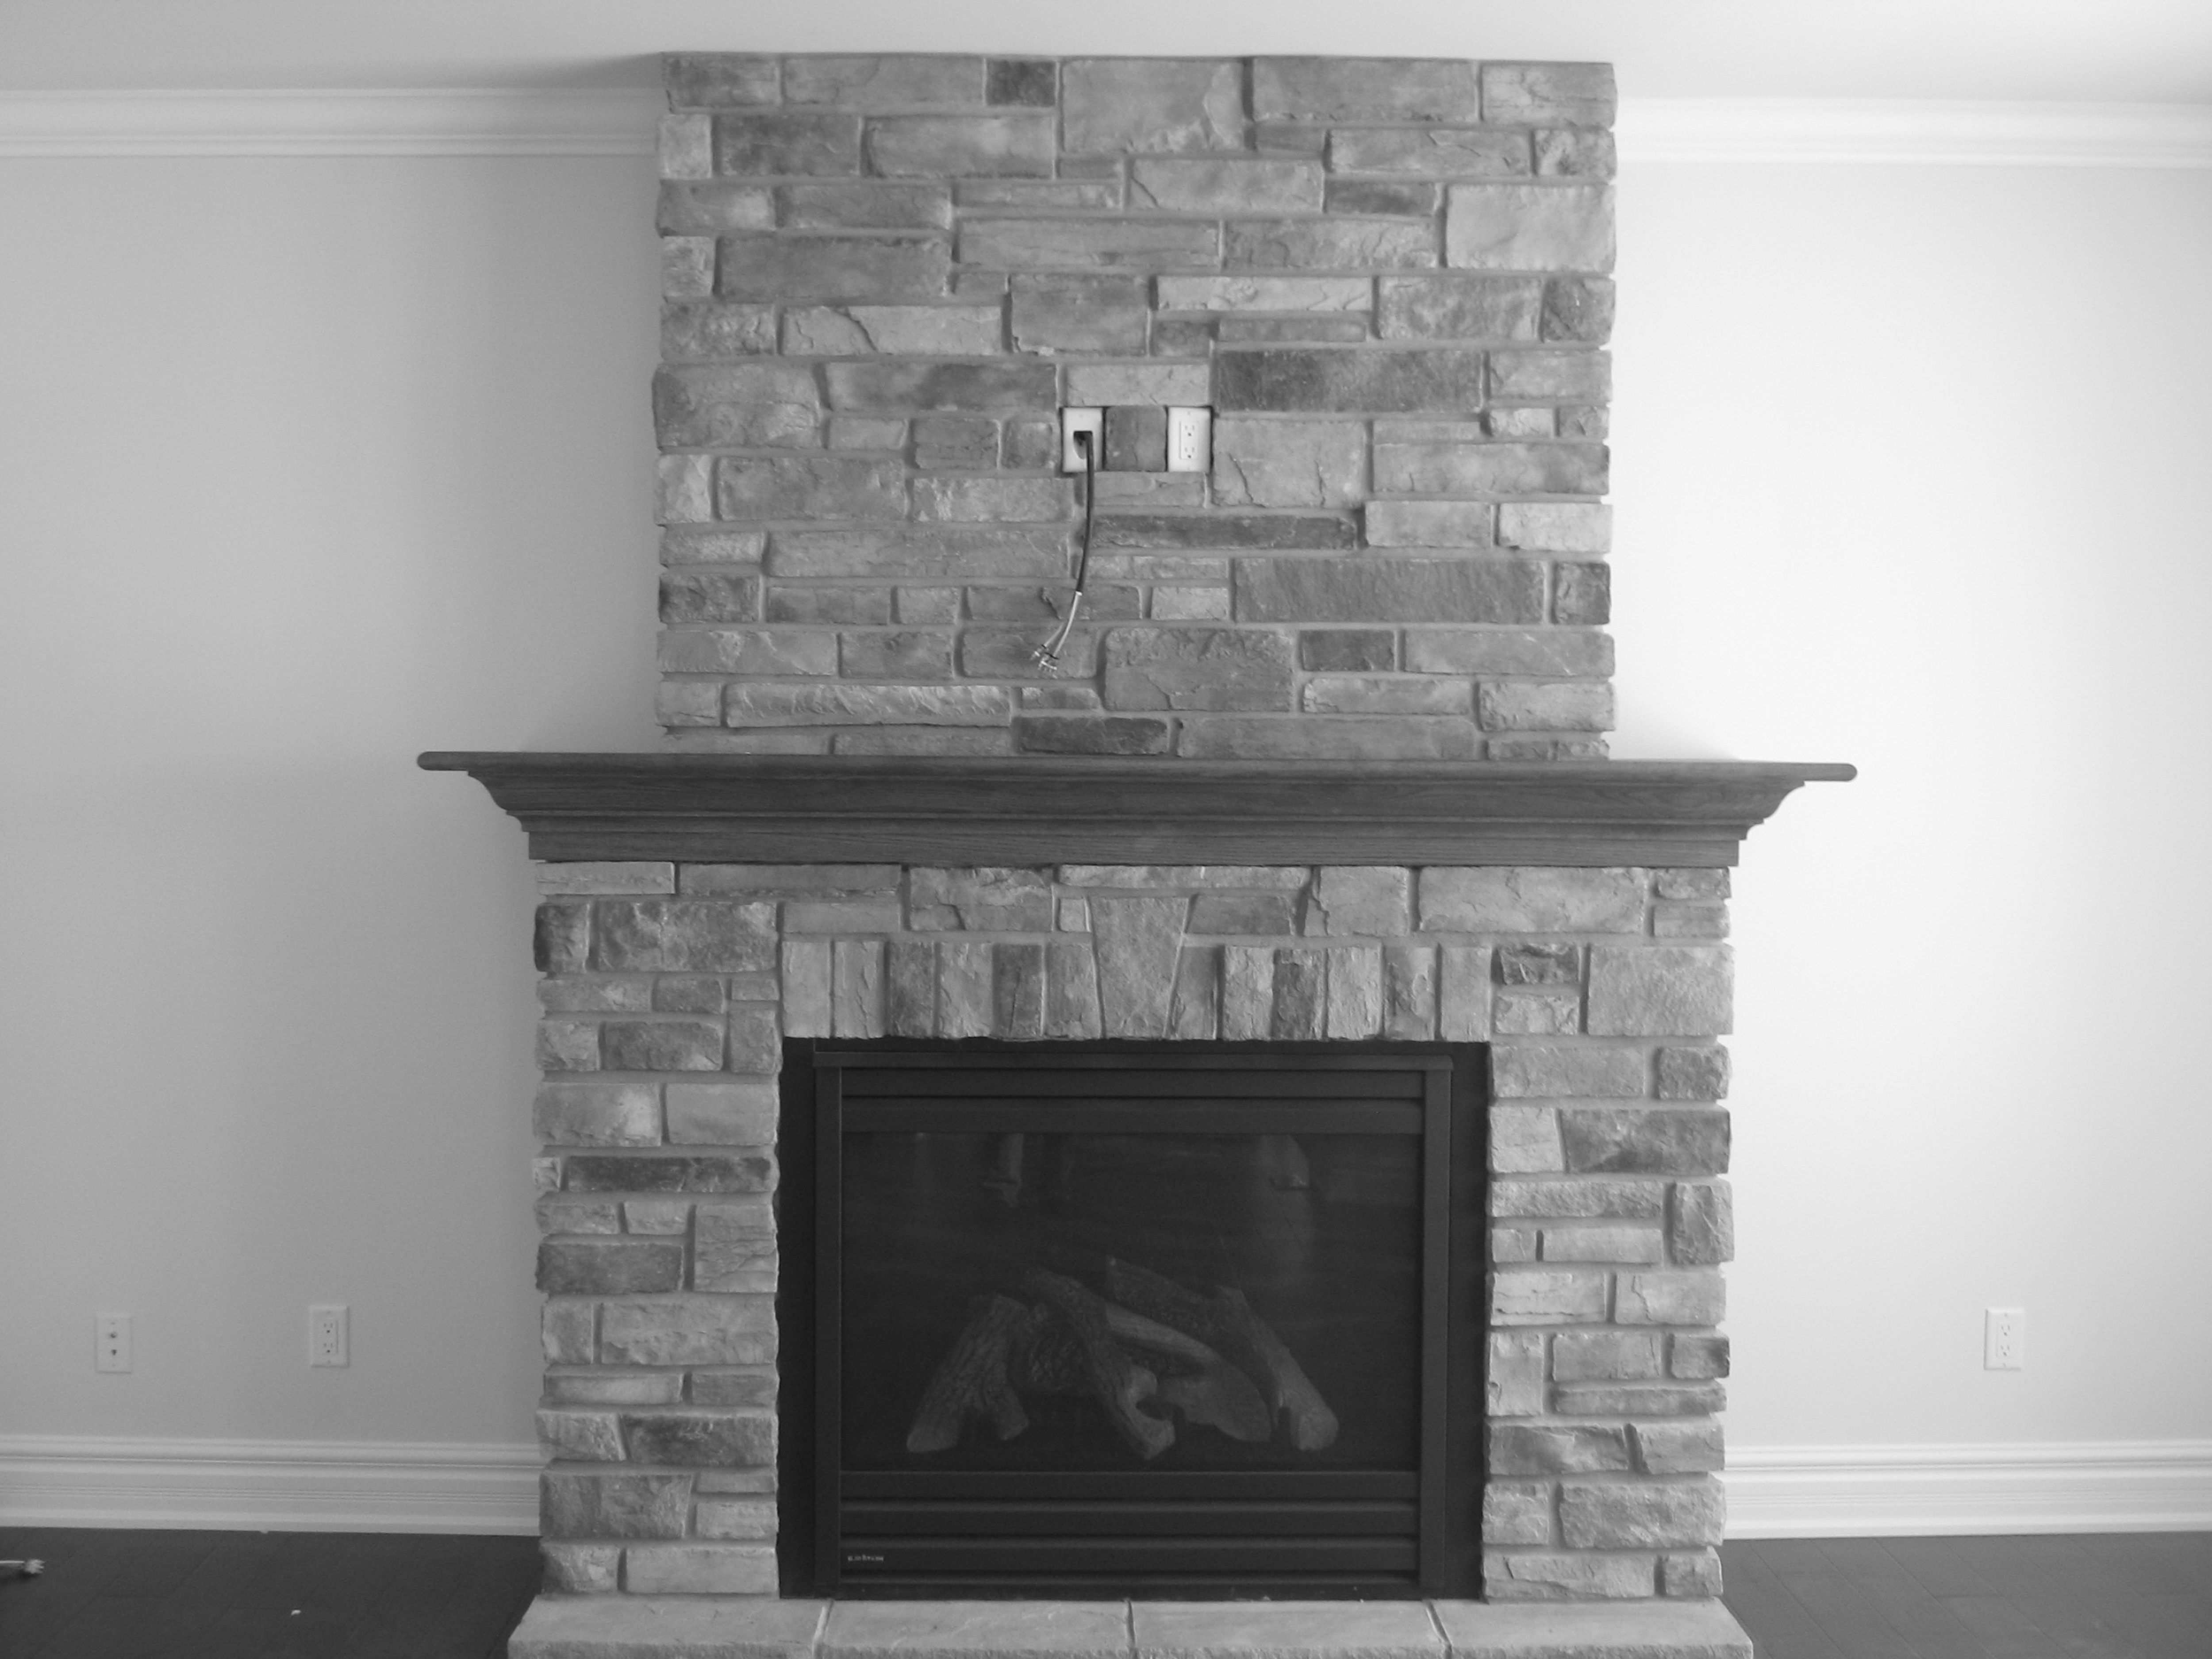 Design Fireplaces Interior Cultured Stone Fireplace Designs Wall Texture